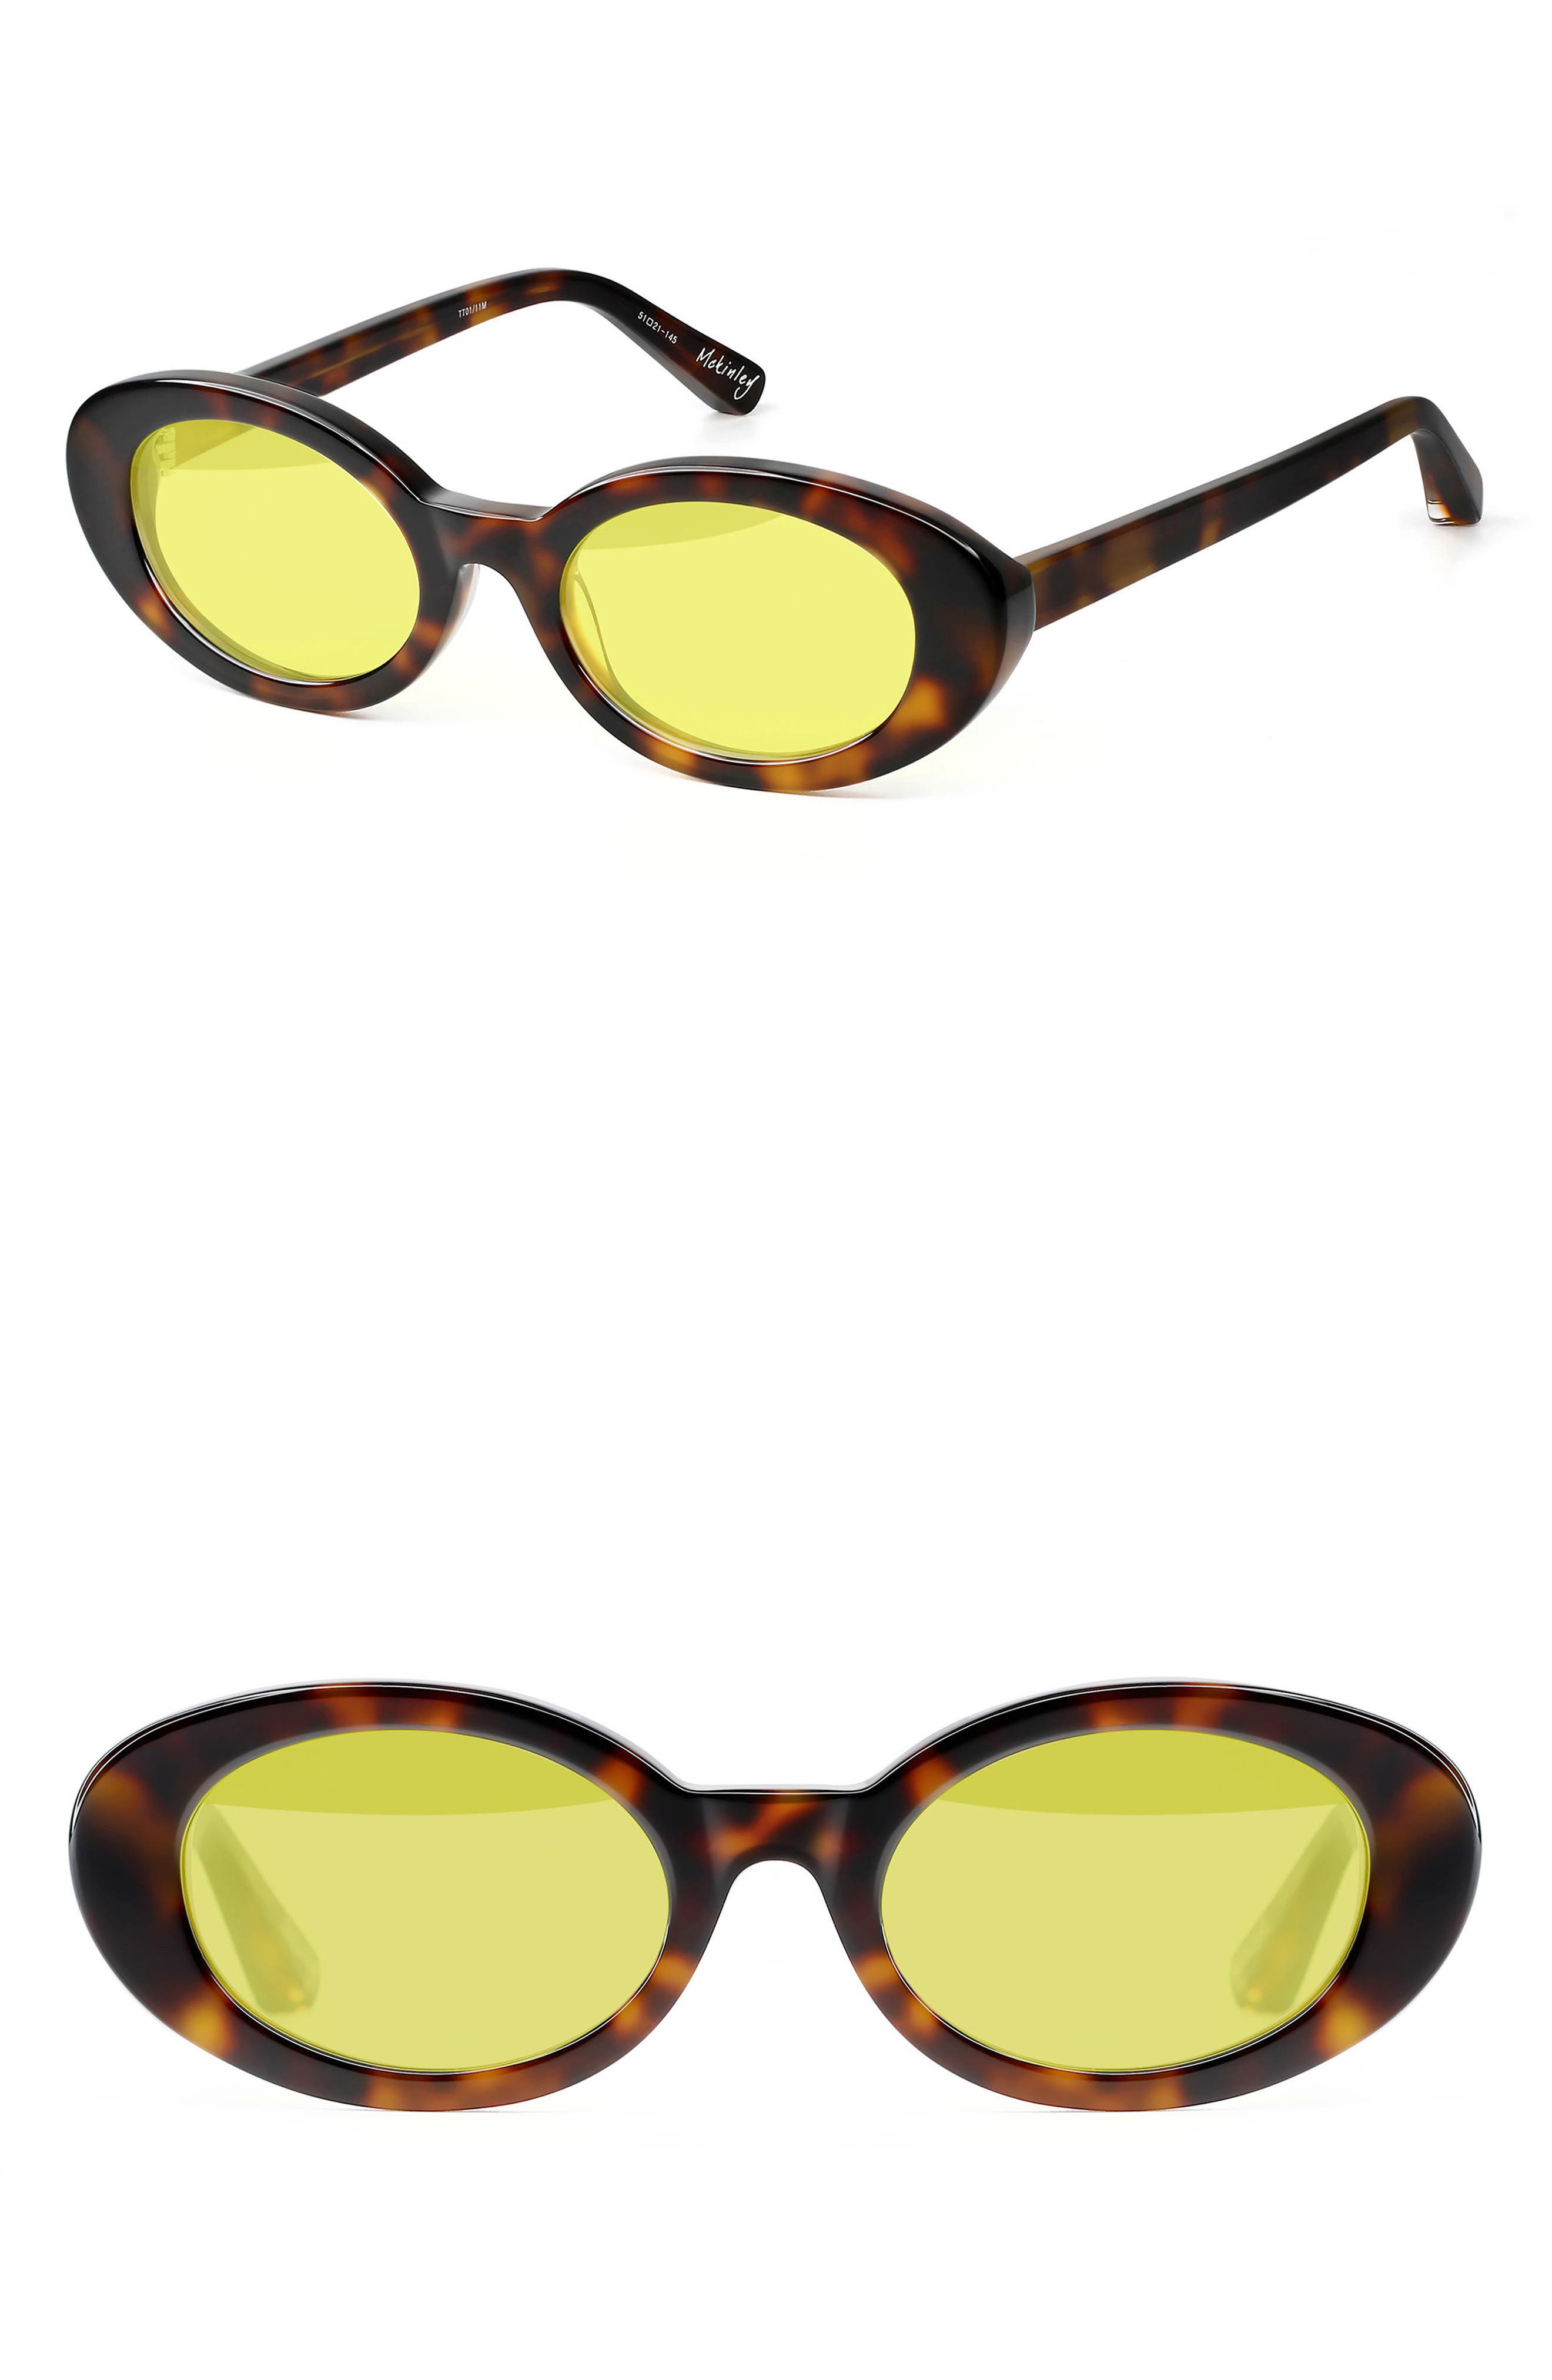 McKinely 51mm Oval Sunglasses,                         Main,                         color, Tortoise/ Yellow